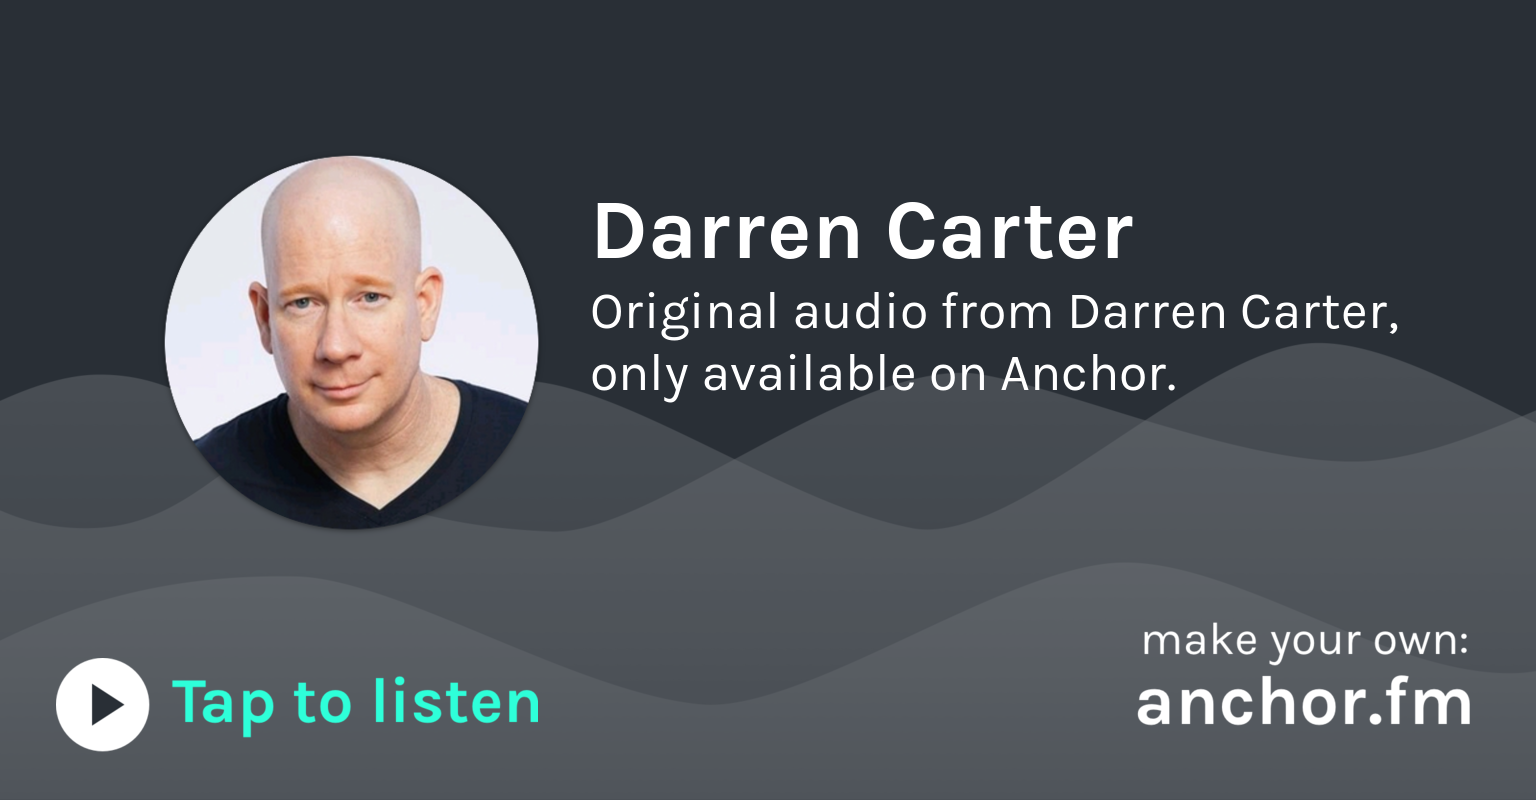 Darren Carter Pocket Party A Podcast On Anchor